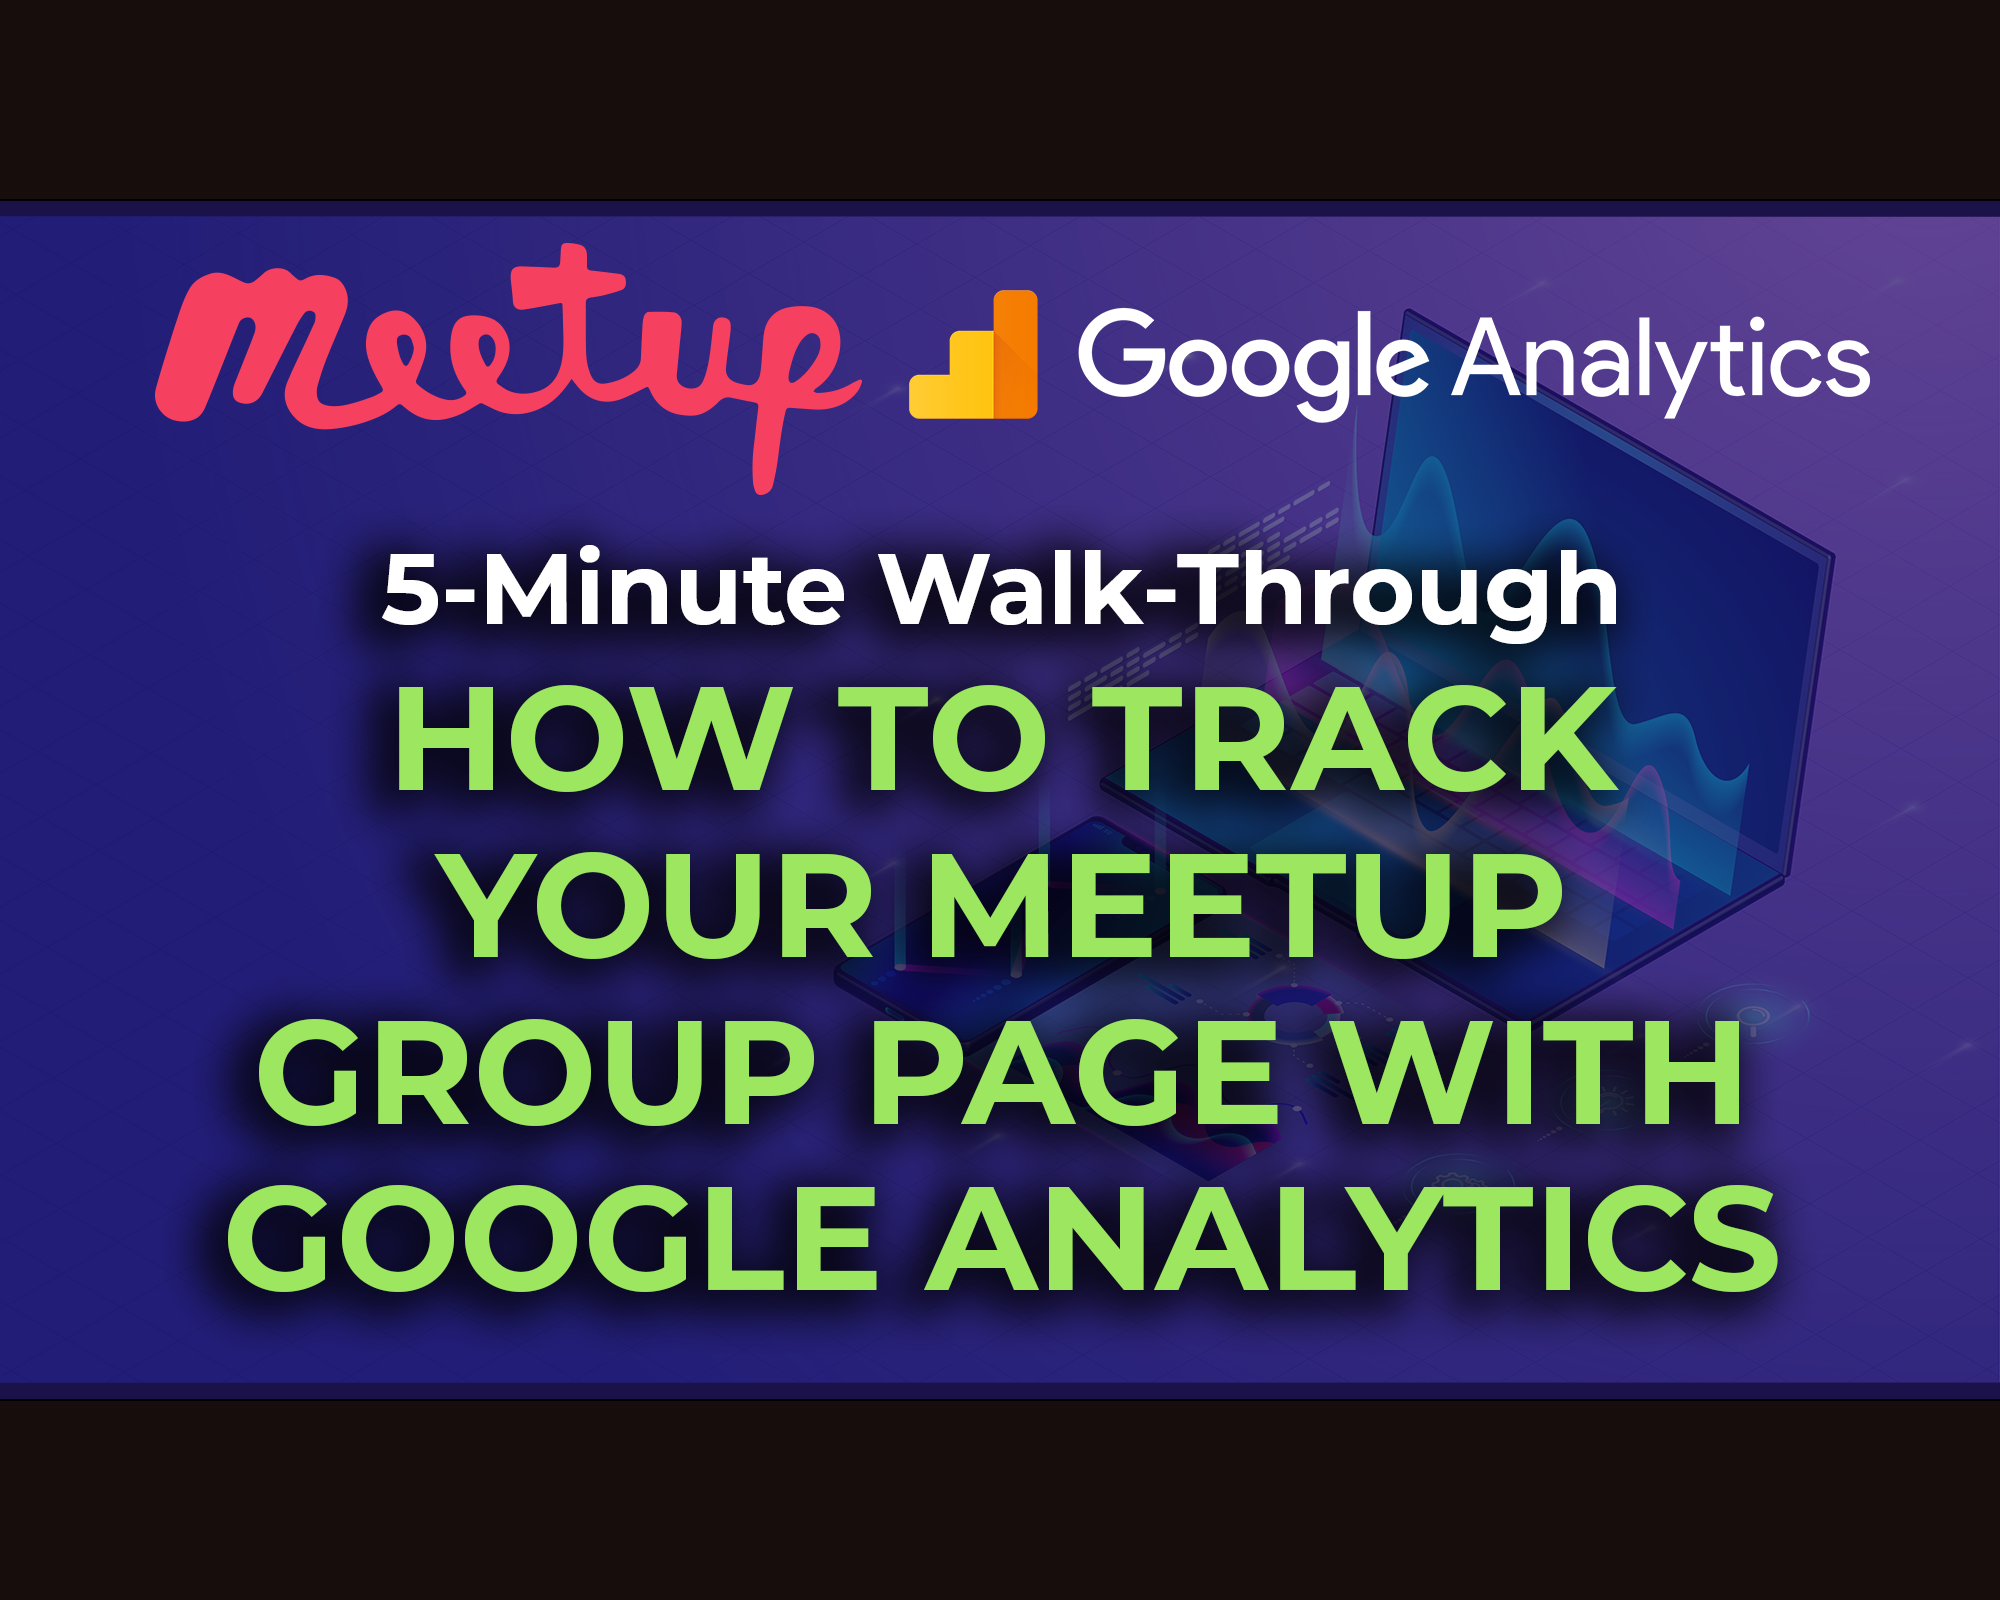 Meetup Google Analytics